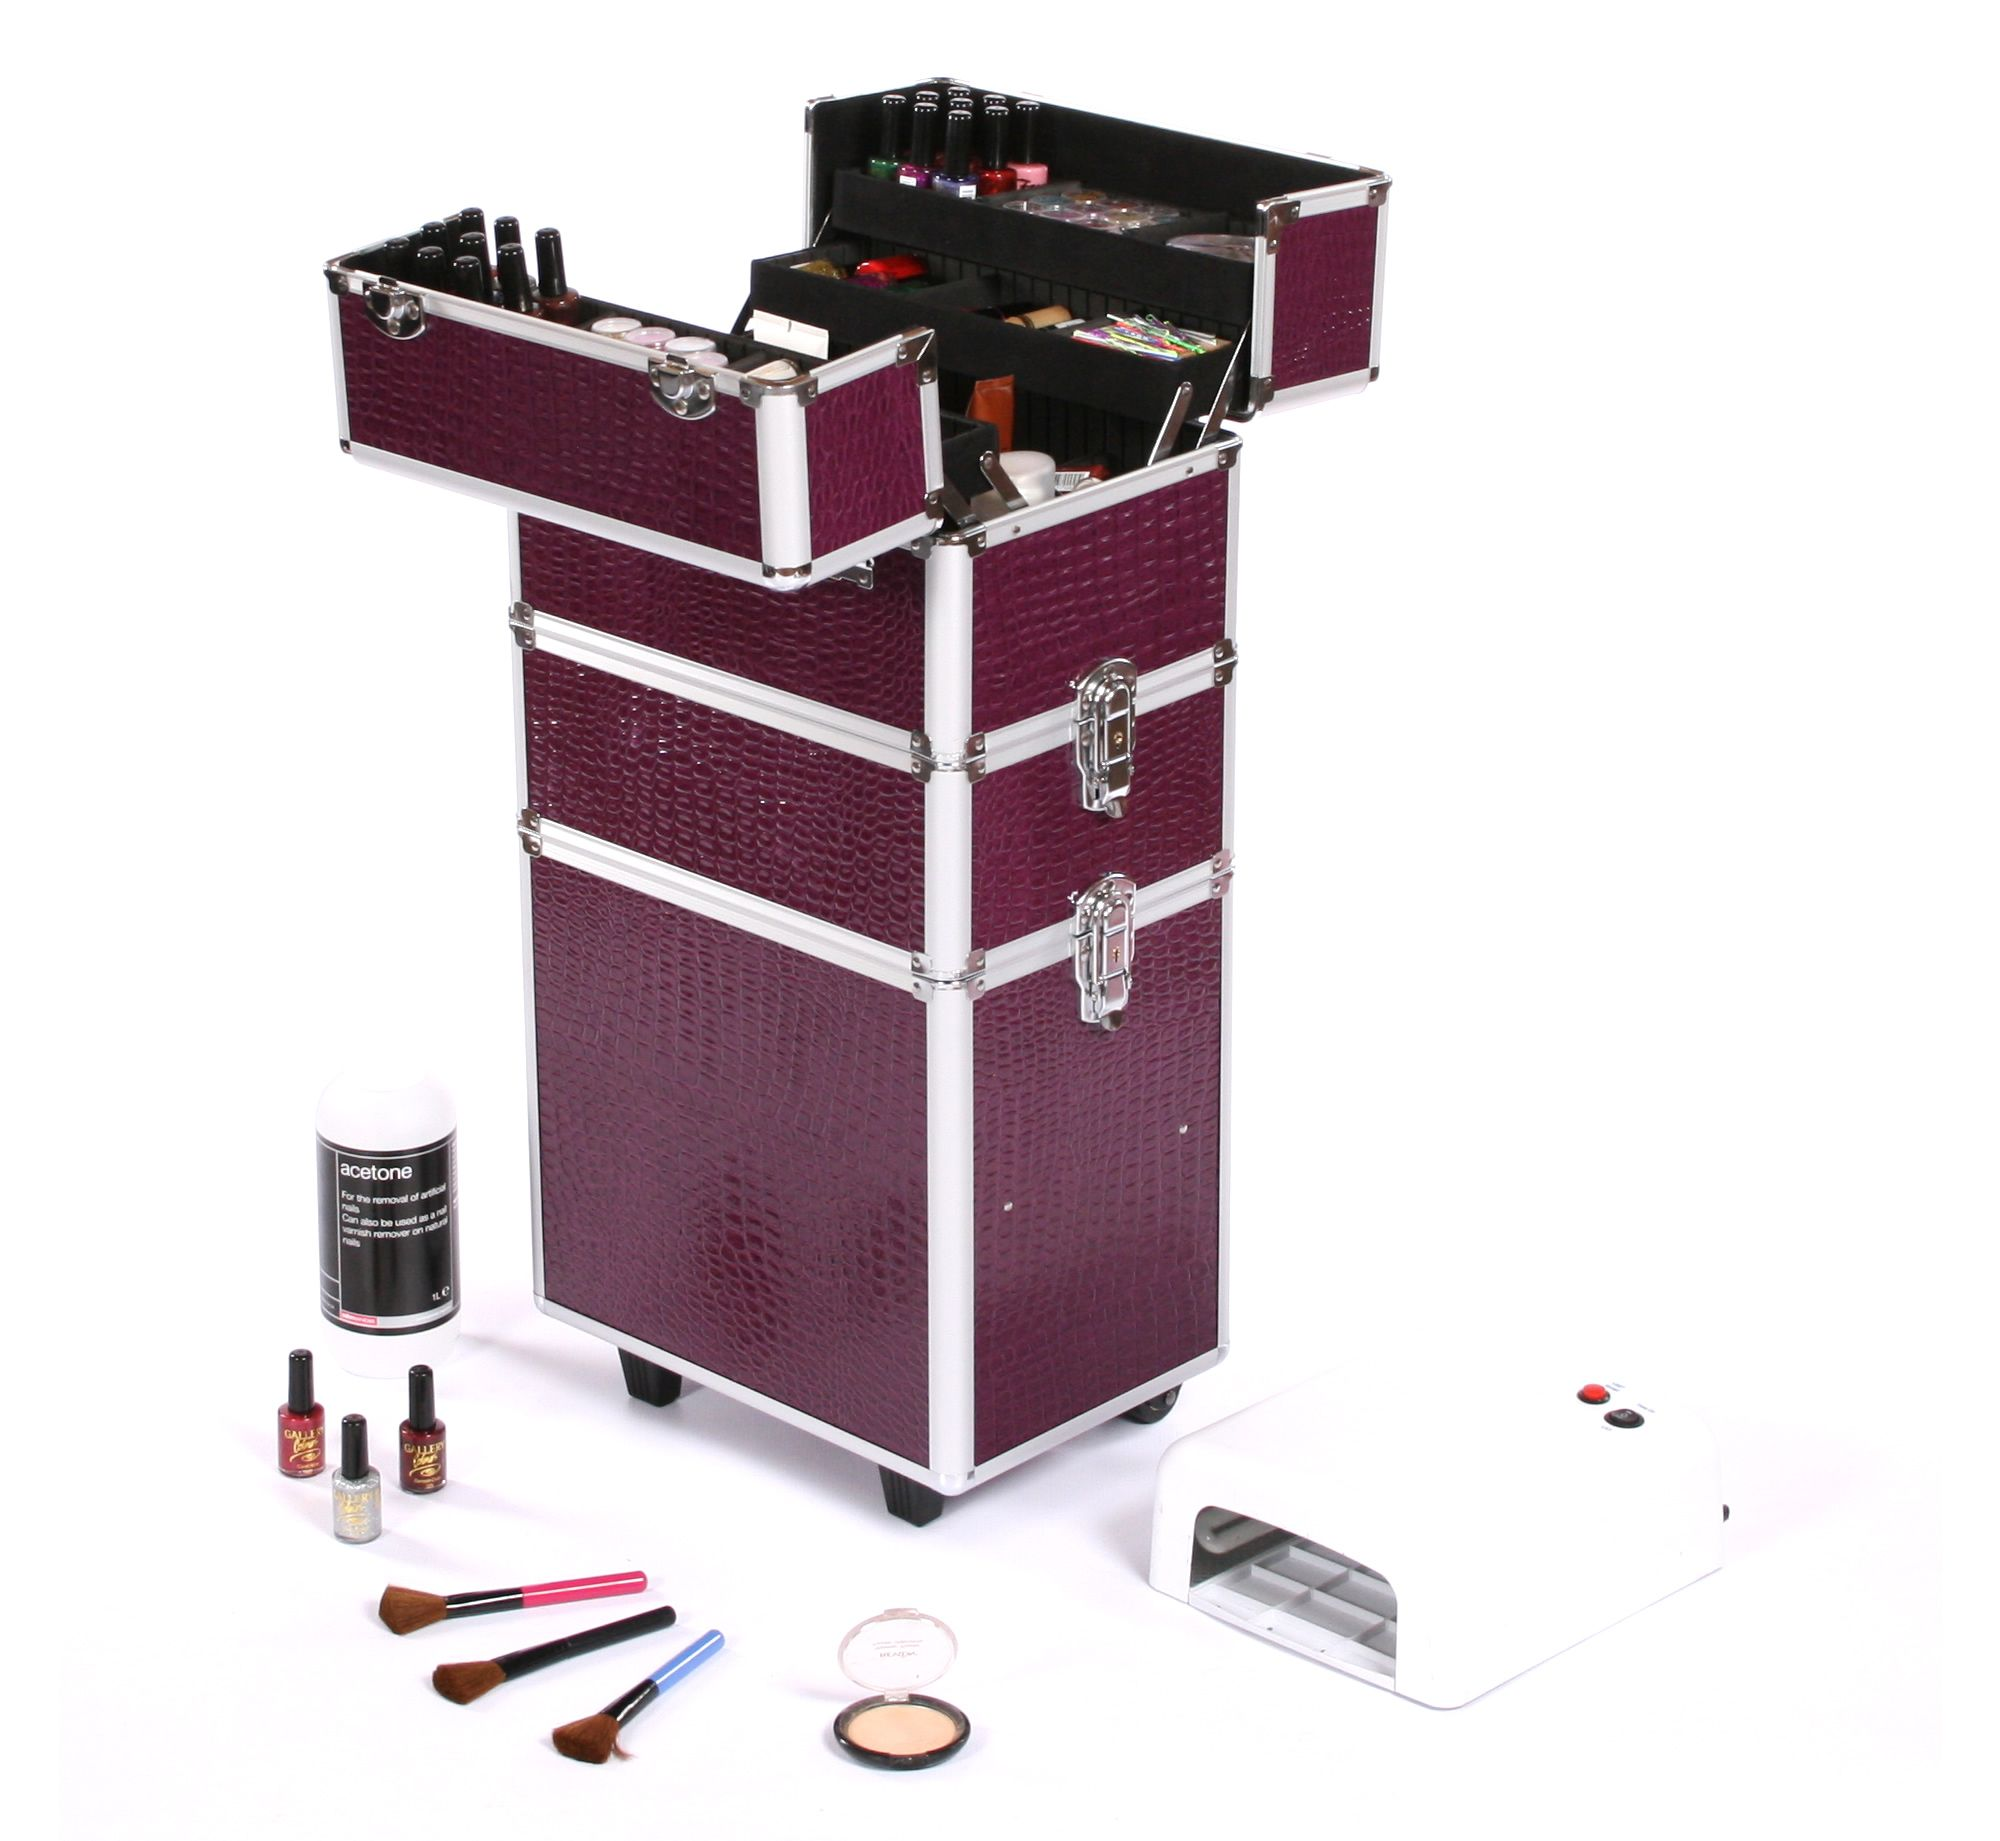 Urbanity Classic Beauty Trolley - perfect for a number of beauty storage uses, with multiple compartments, it can store all your beauty and cosmetic supplies. Available at http://wwww.urbanityonline.co.uk/Beauty-Trolley